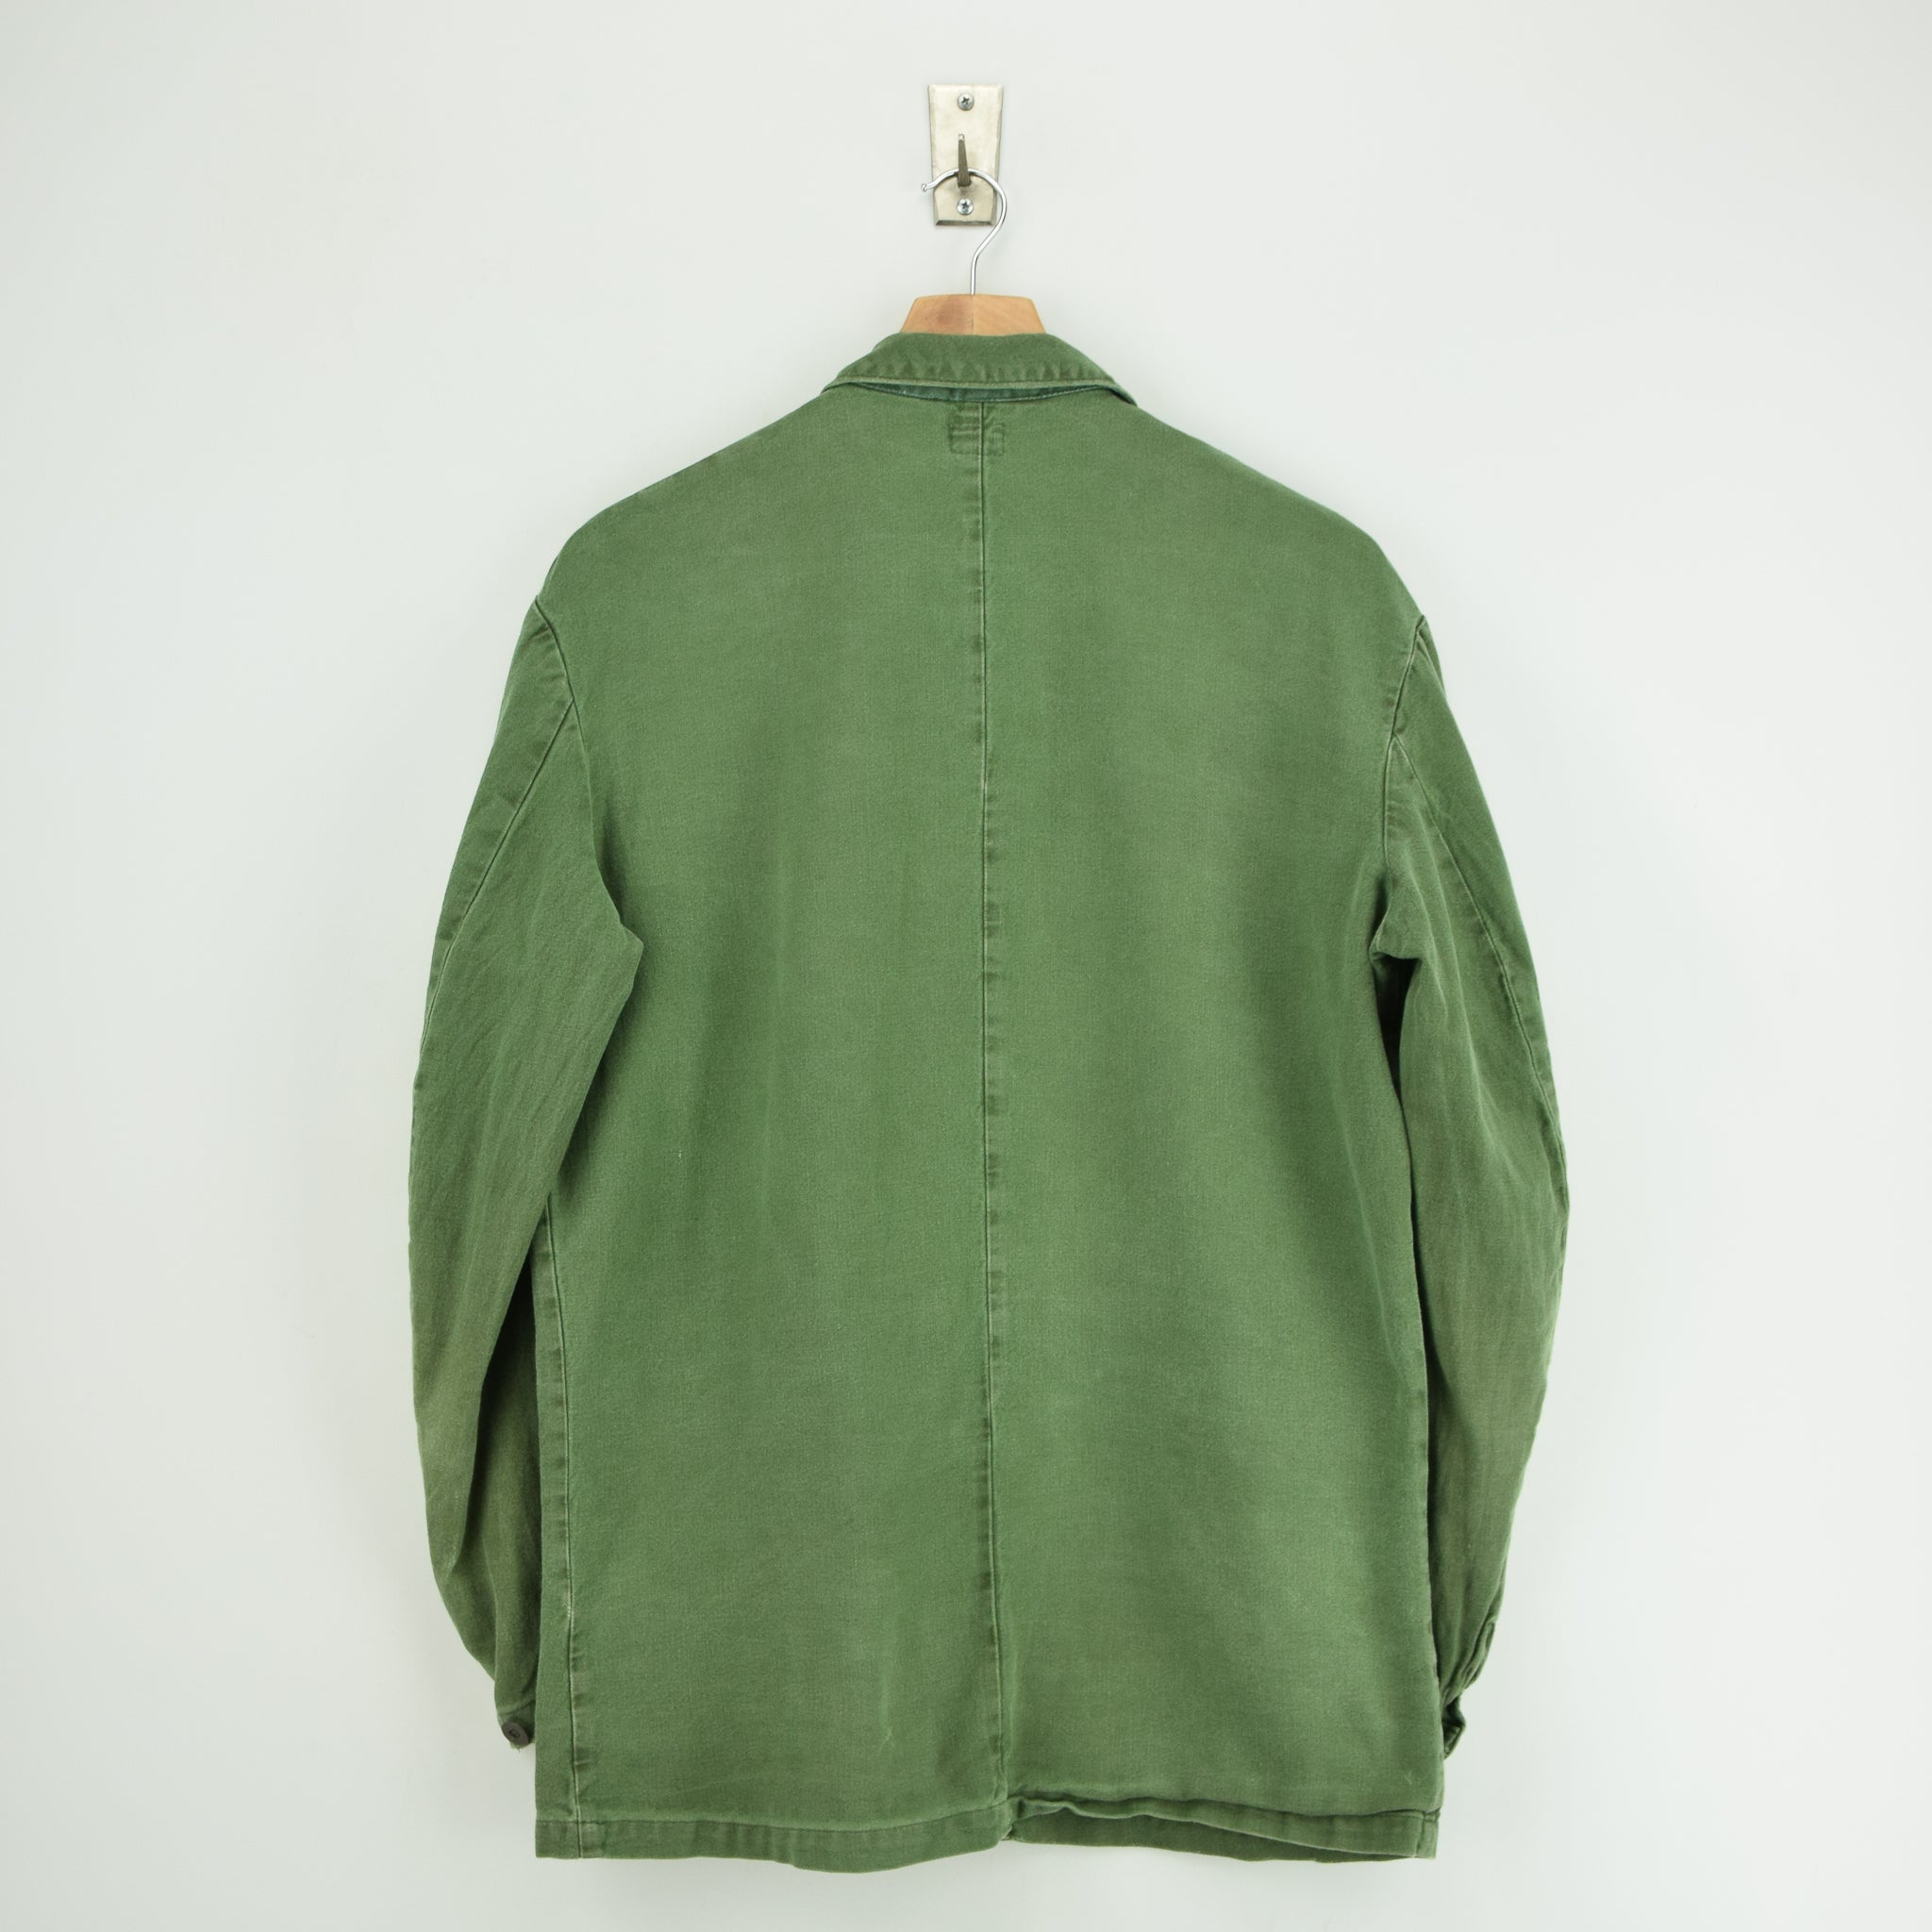 Vintage Swedish Worker Style Distressed Green Military Cotton Field Jacket M / L back